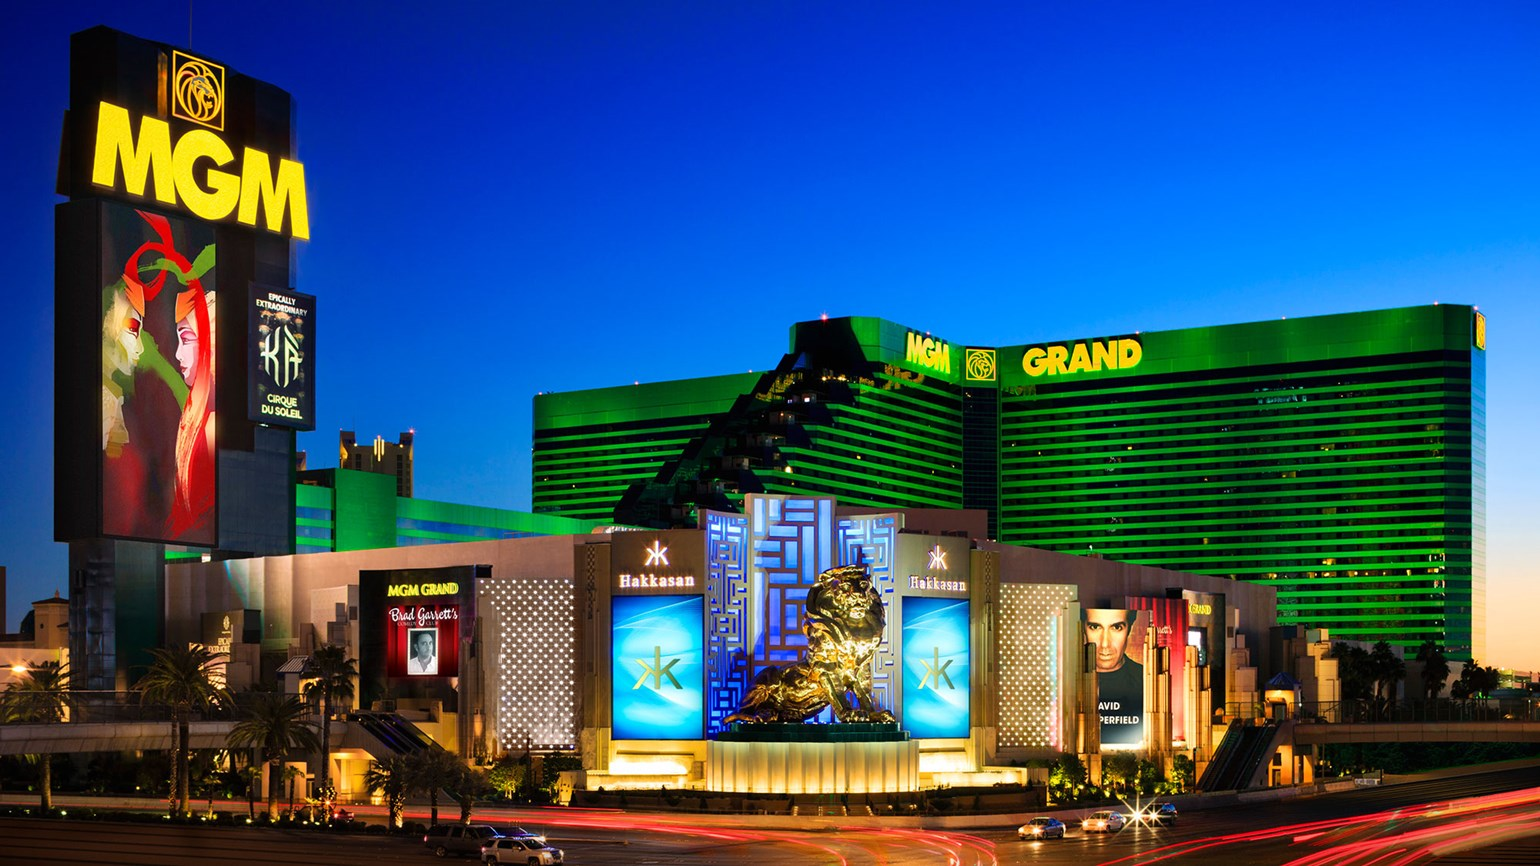 MGM Resorts said data breach exposed no payment info